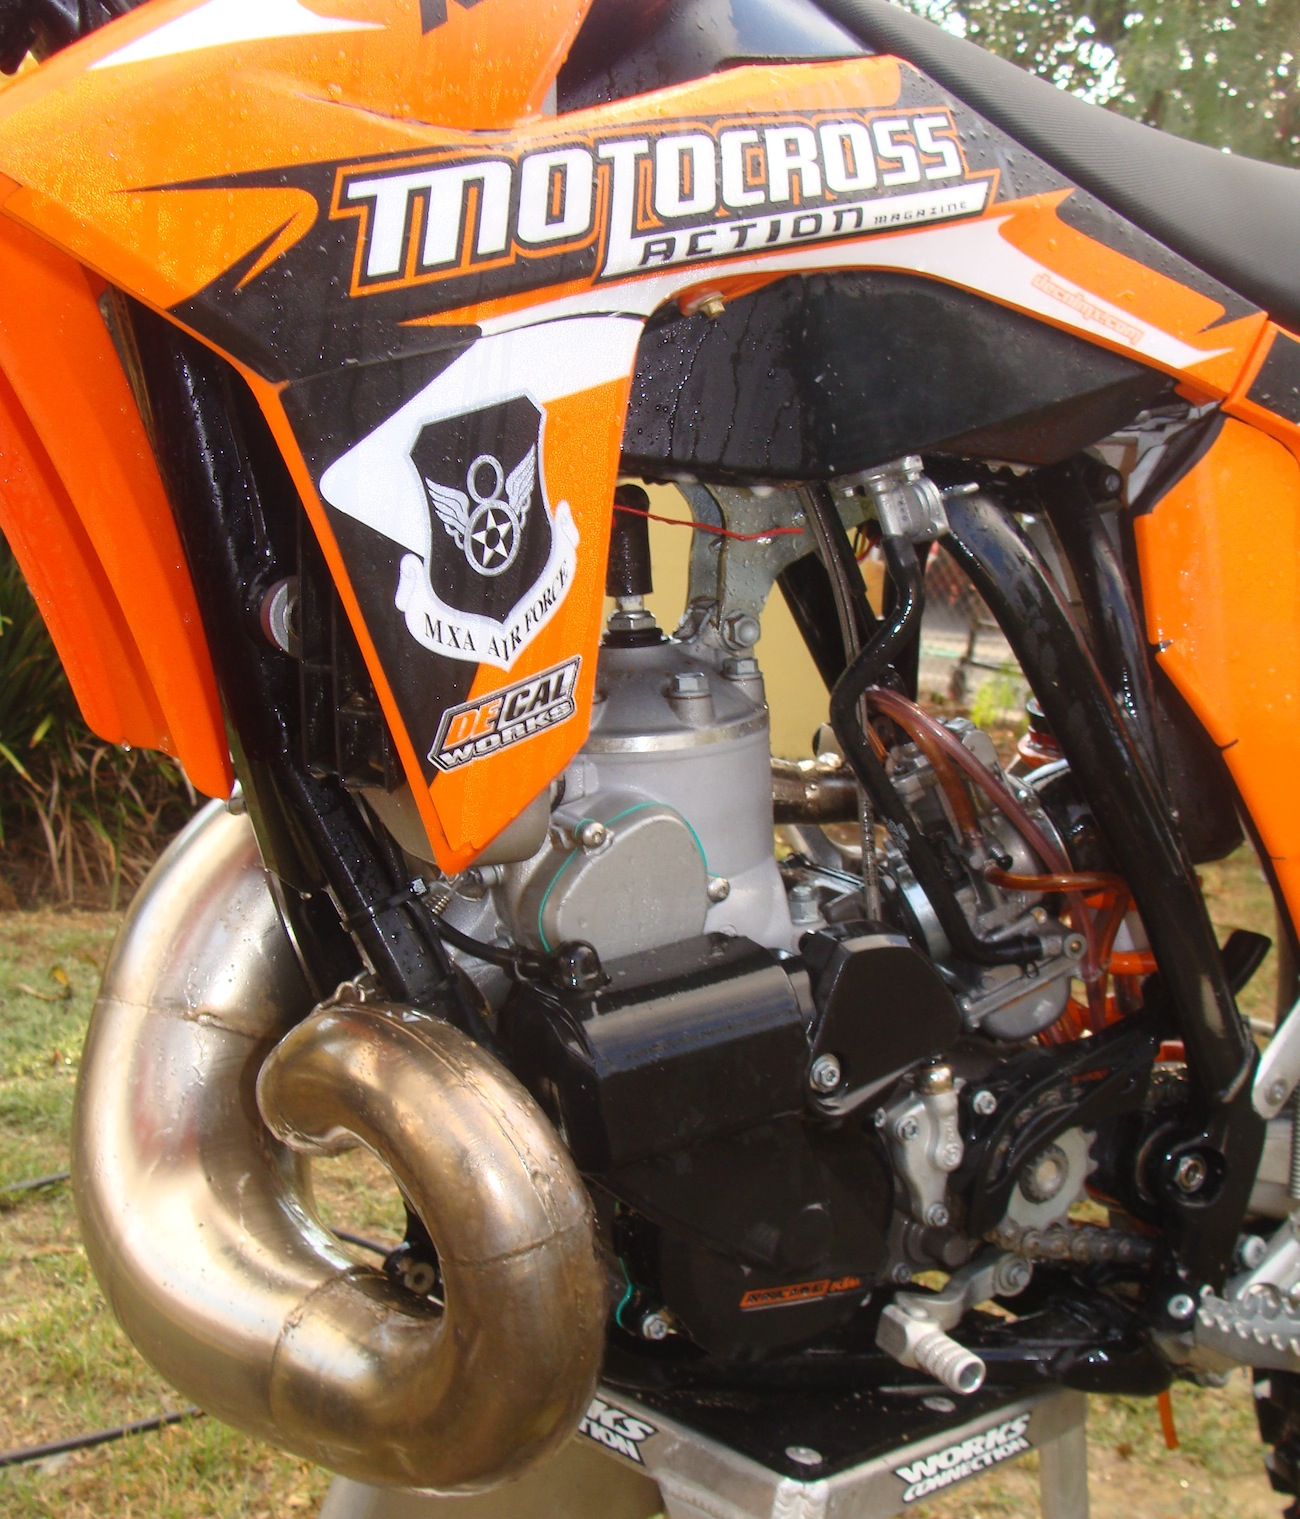 Inside Secrets Of Building A Moto Ready Ktm 300xc Two Stroke Racer 2008 Exc Engine Diagram I Was Left To Work The Kinks Outr As Rest Mxa Test Crew Members Had Lots New Bikes On Their Do Lists With Time My Hands